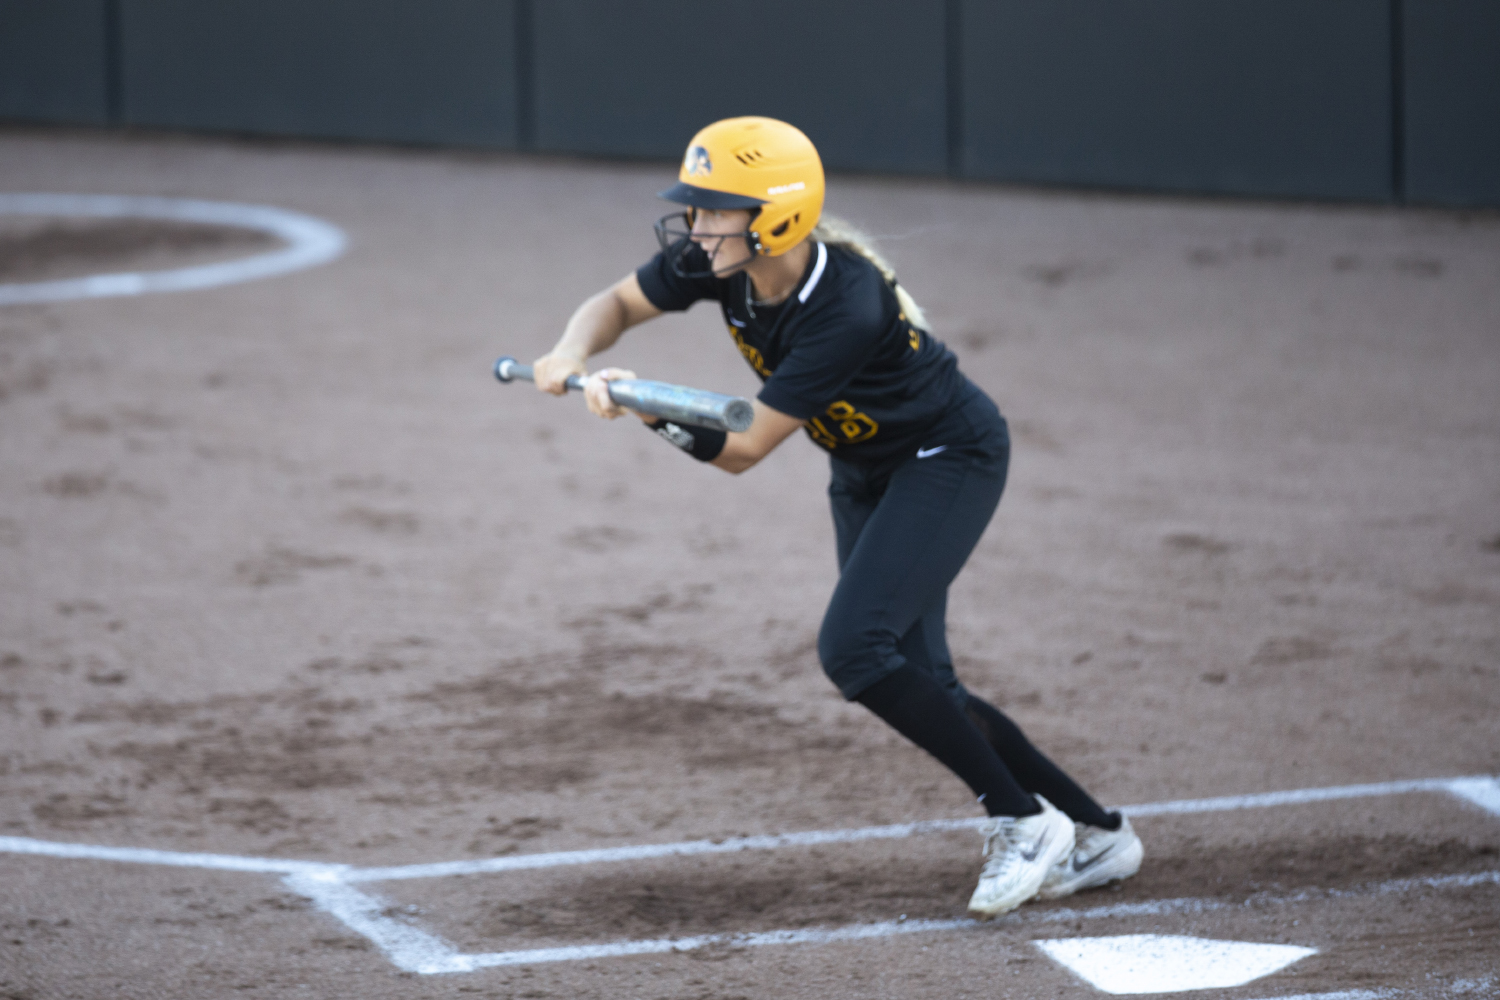 Infielder Mia Ruther bunts during the Iowa softball fall opener against Des Moines Area Community College. The Hawkeyes beat the Bears 4-1 in 10 innings.